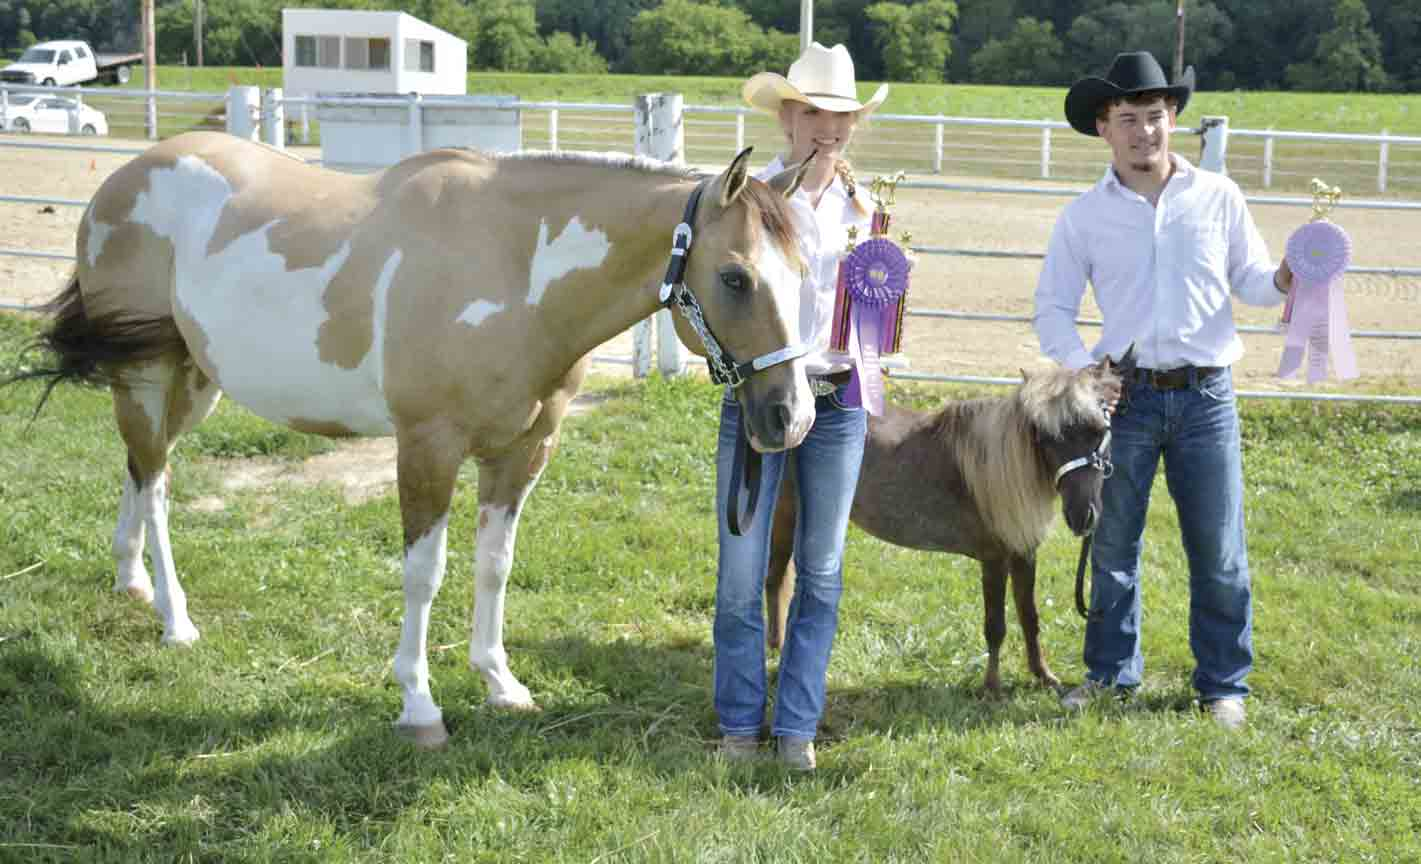 Katelyn Kleiboer (left) showed the Supreme Champion Gelding and Brendan Lovstuen (right) had the Reseve Champion Gleding during the 2019 Winneshiek County Fair Horse Show. (file photo)It will be 'Show and Go' for 4-H and FFA livestock exhibitors this year in Winneshiek Co....